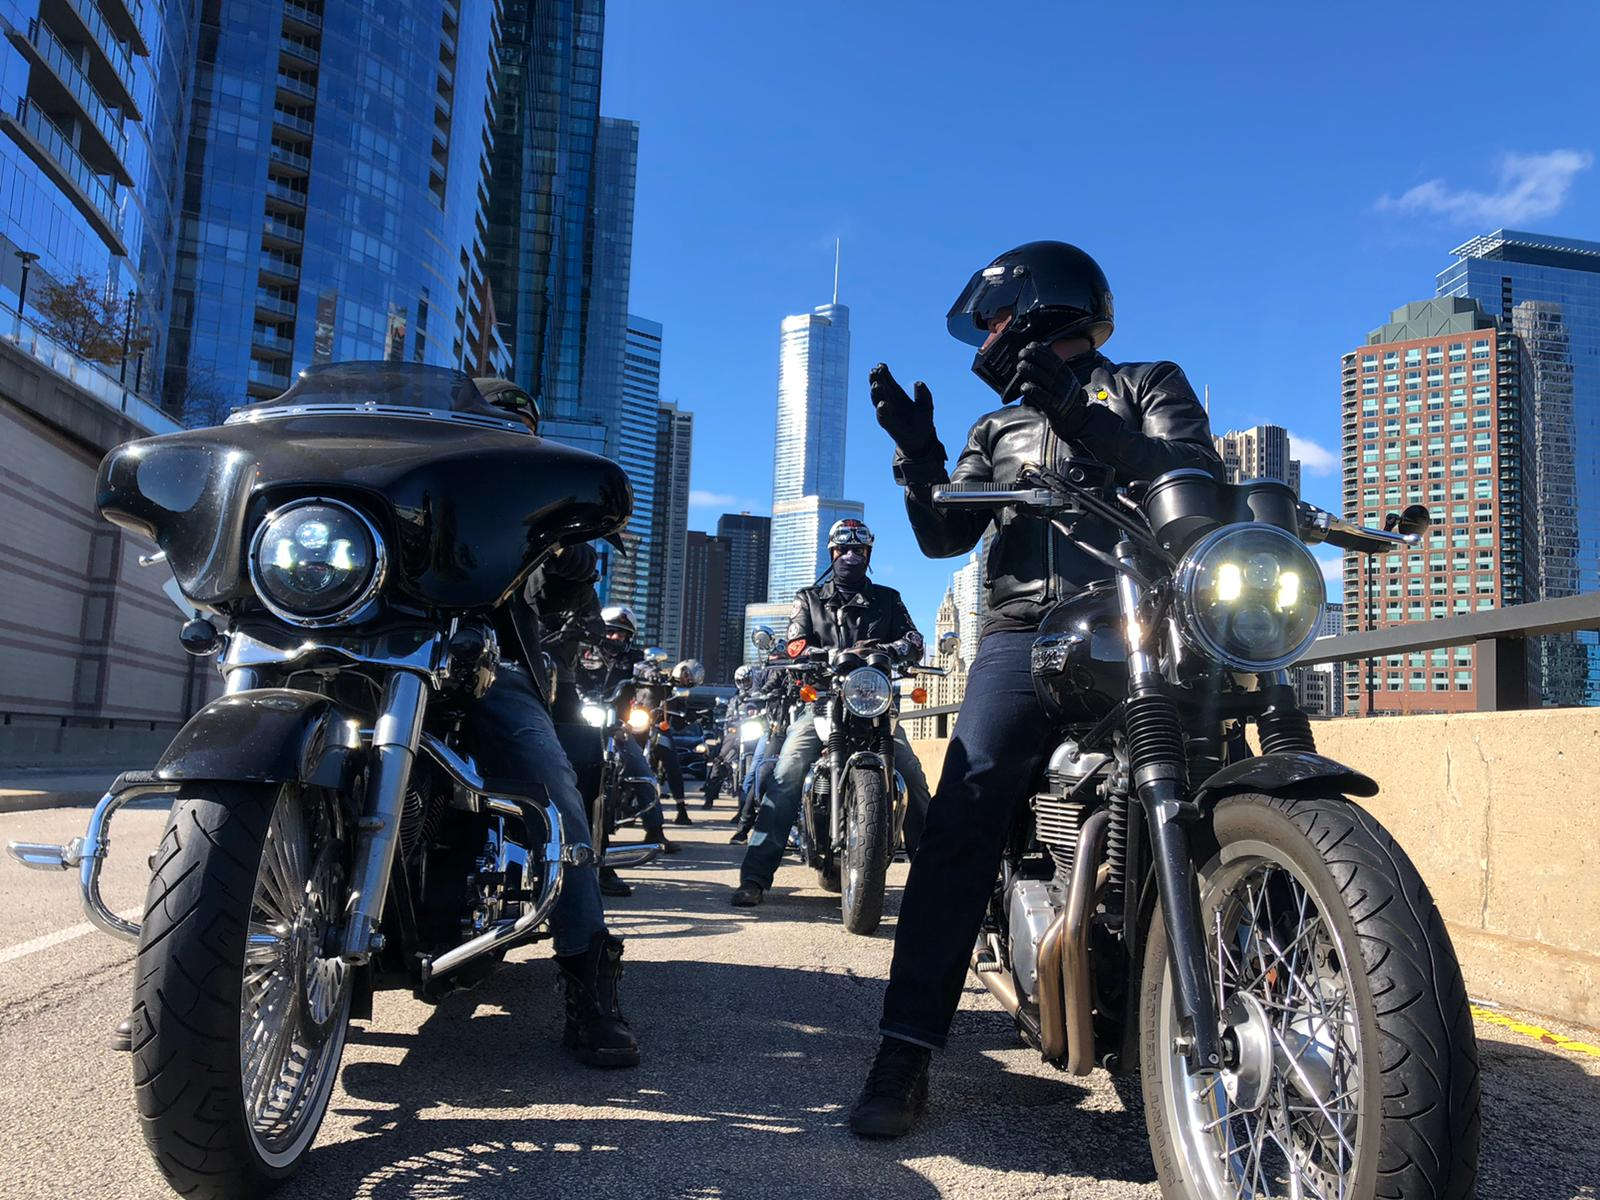 Engines For Changes Uses Motorcycles To Fight Today's Most Pressing Issues